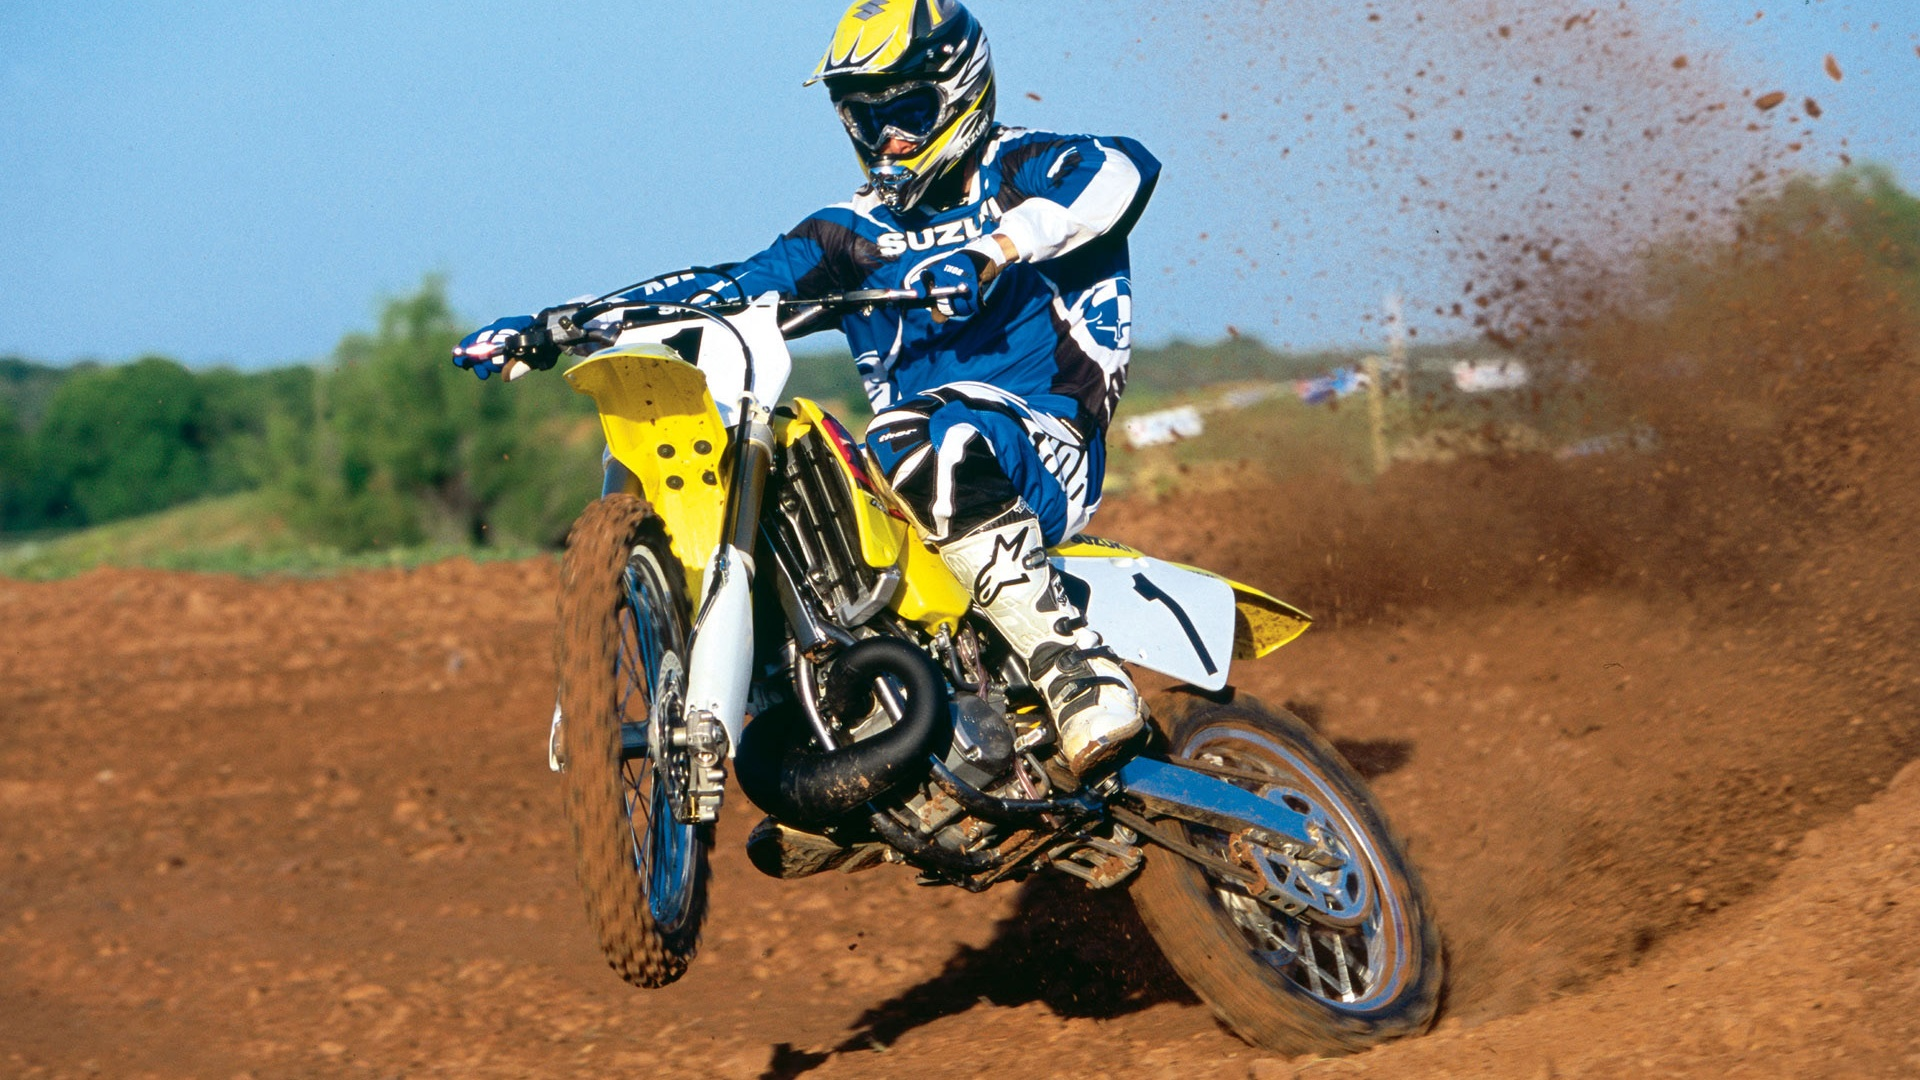 Suzuki motorcycle, racing, jumping 1920x1080 wallpaper